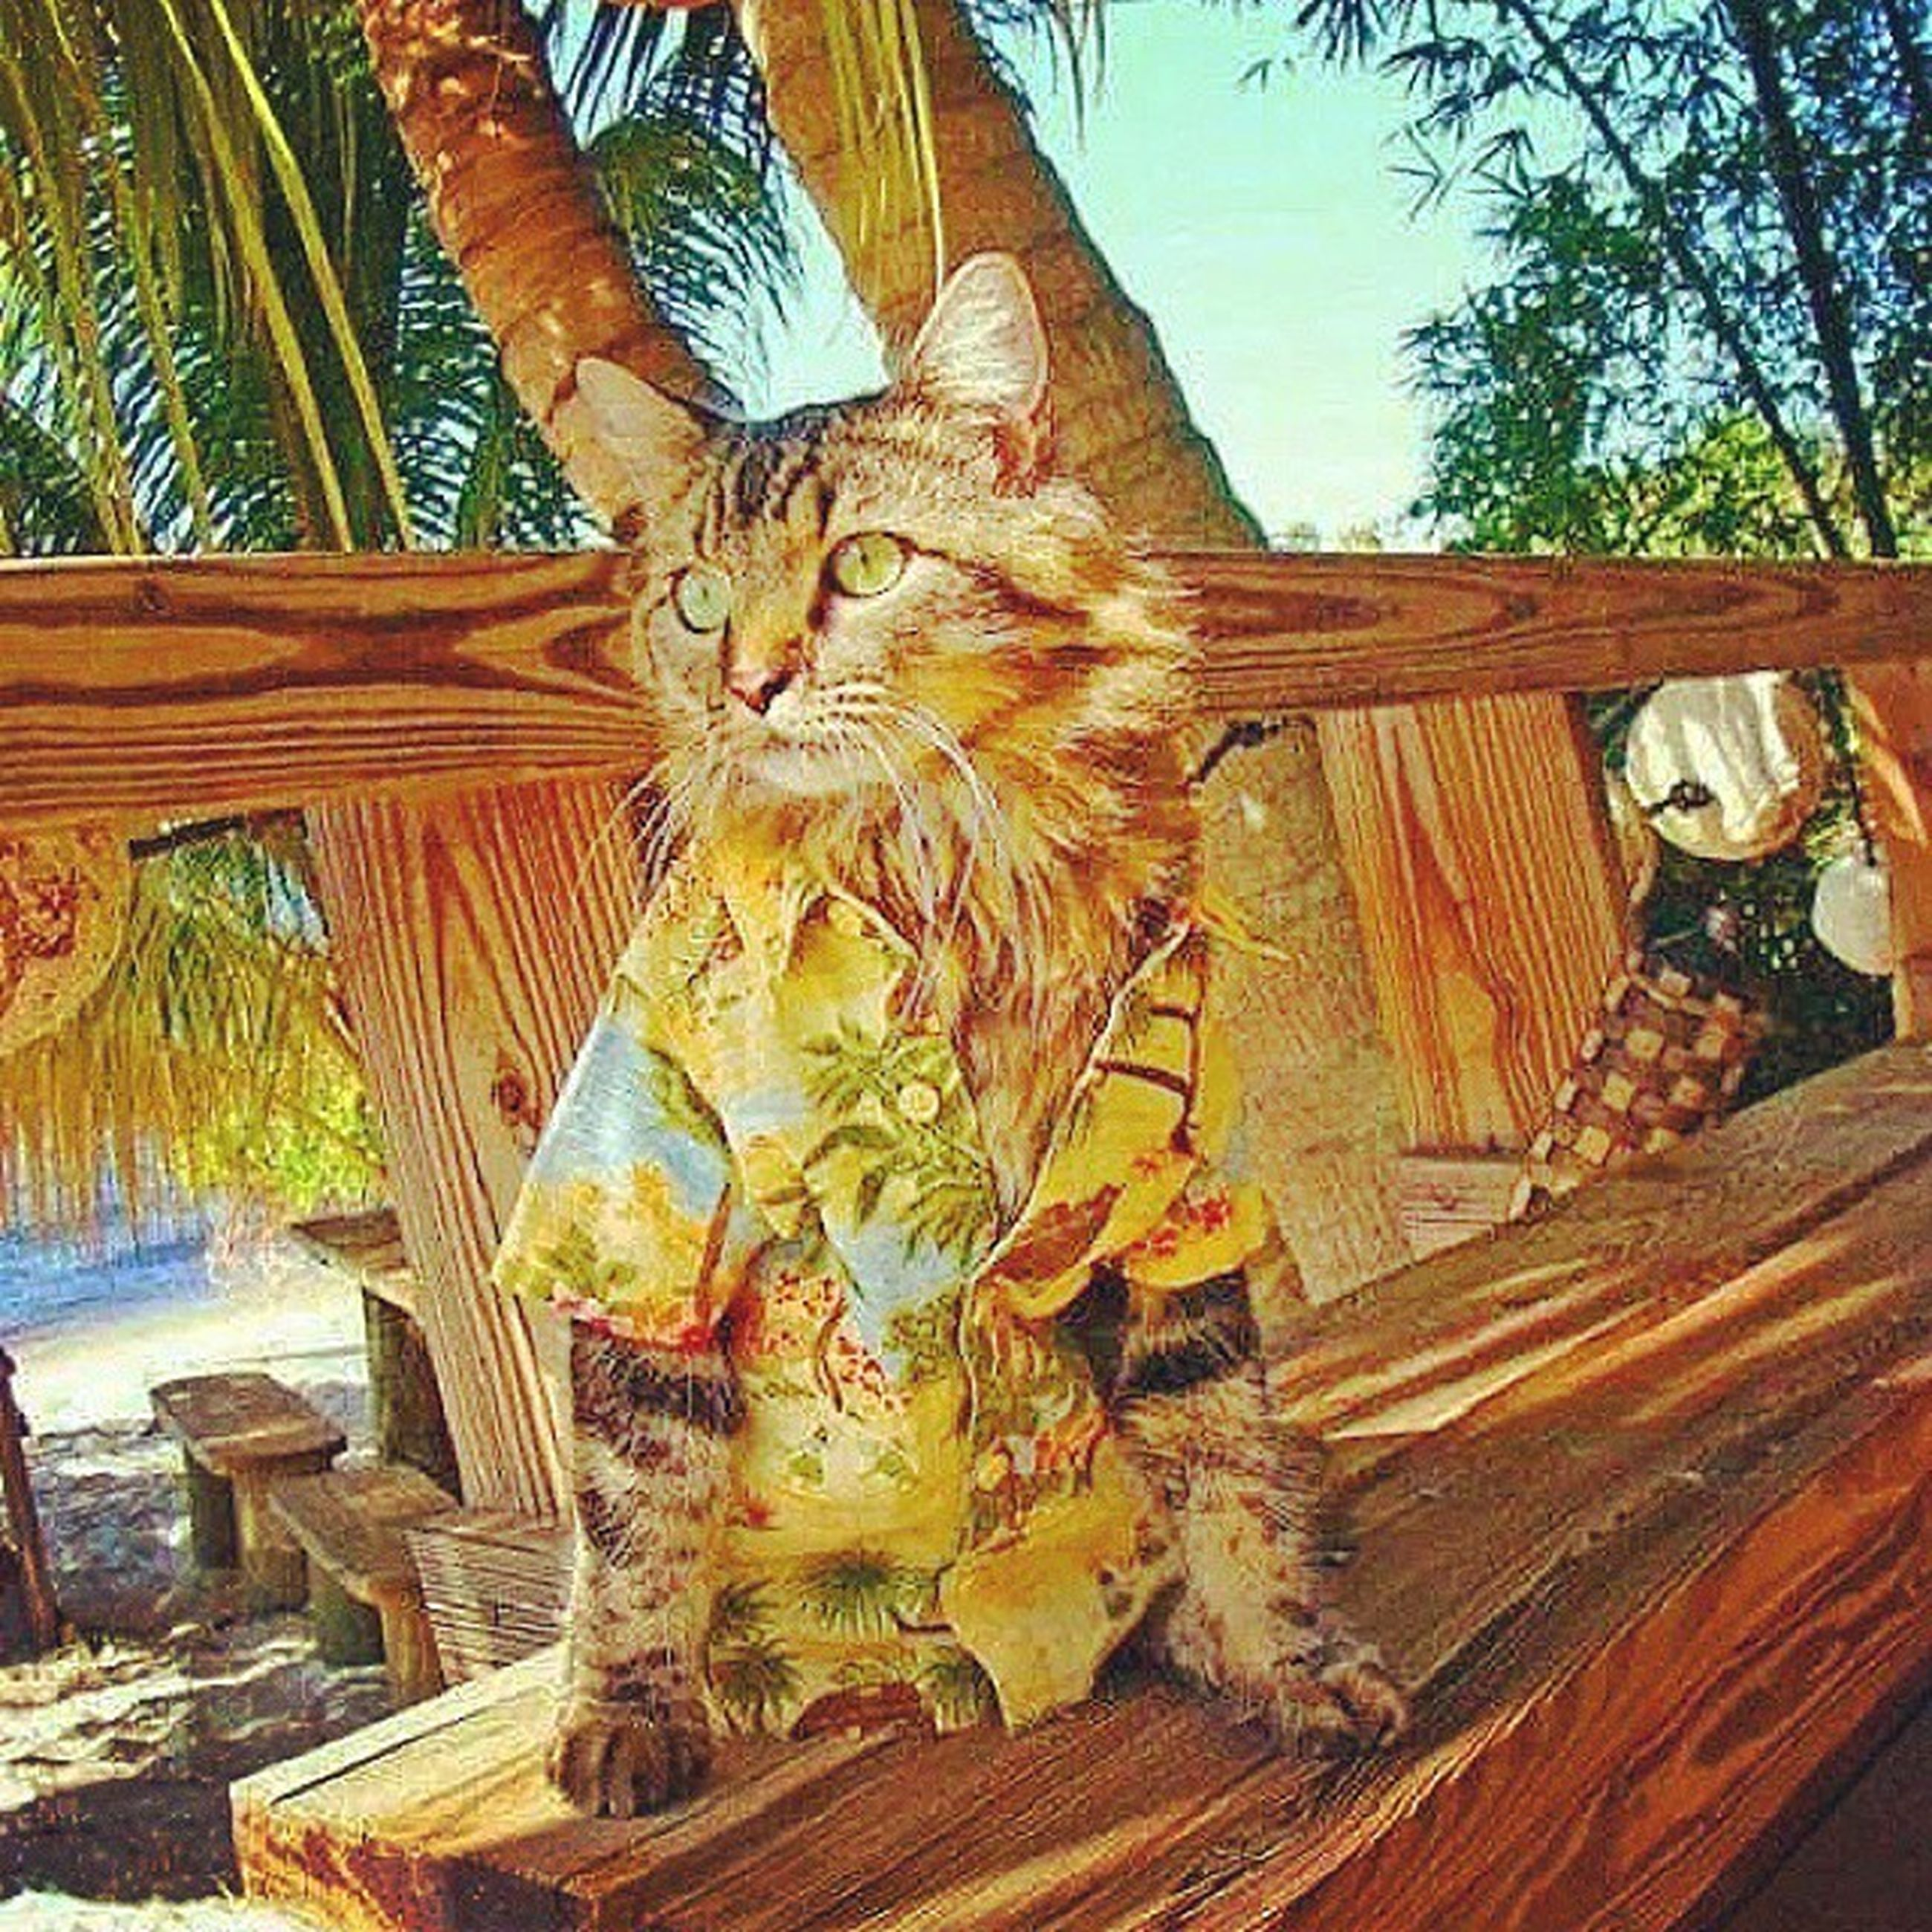 tree, art and craft, art, wood - material, domestic cat, creativity, animal representation, built structure, sculpture, cat, day, statue, one animal, no people, feline, sunlight, animal themes, architecture, relaxation, palm tree